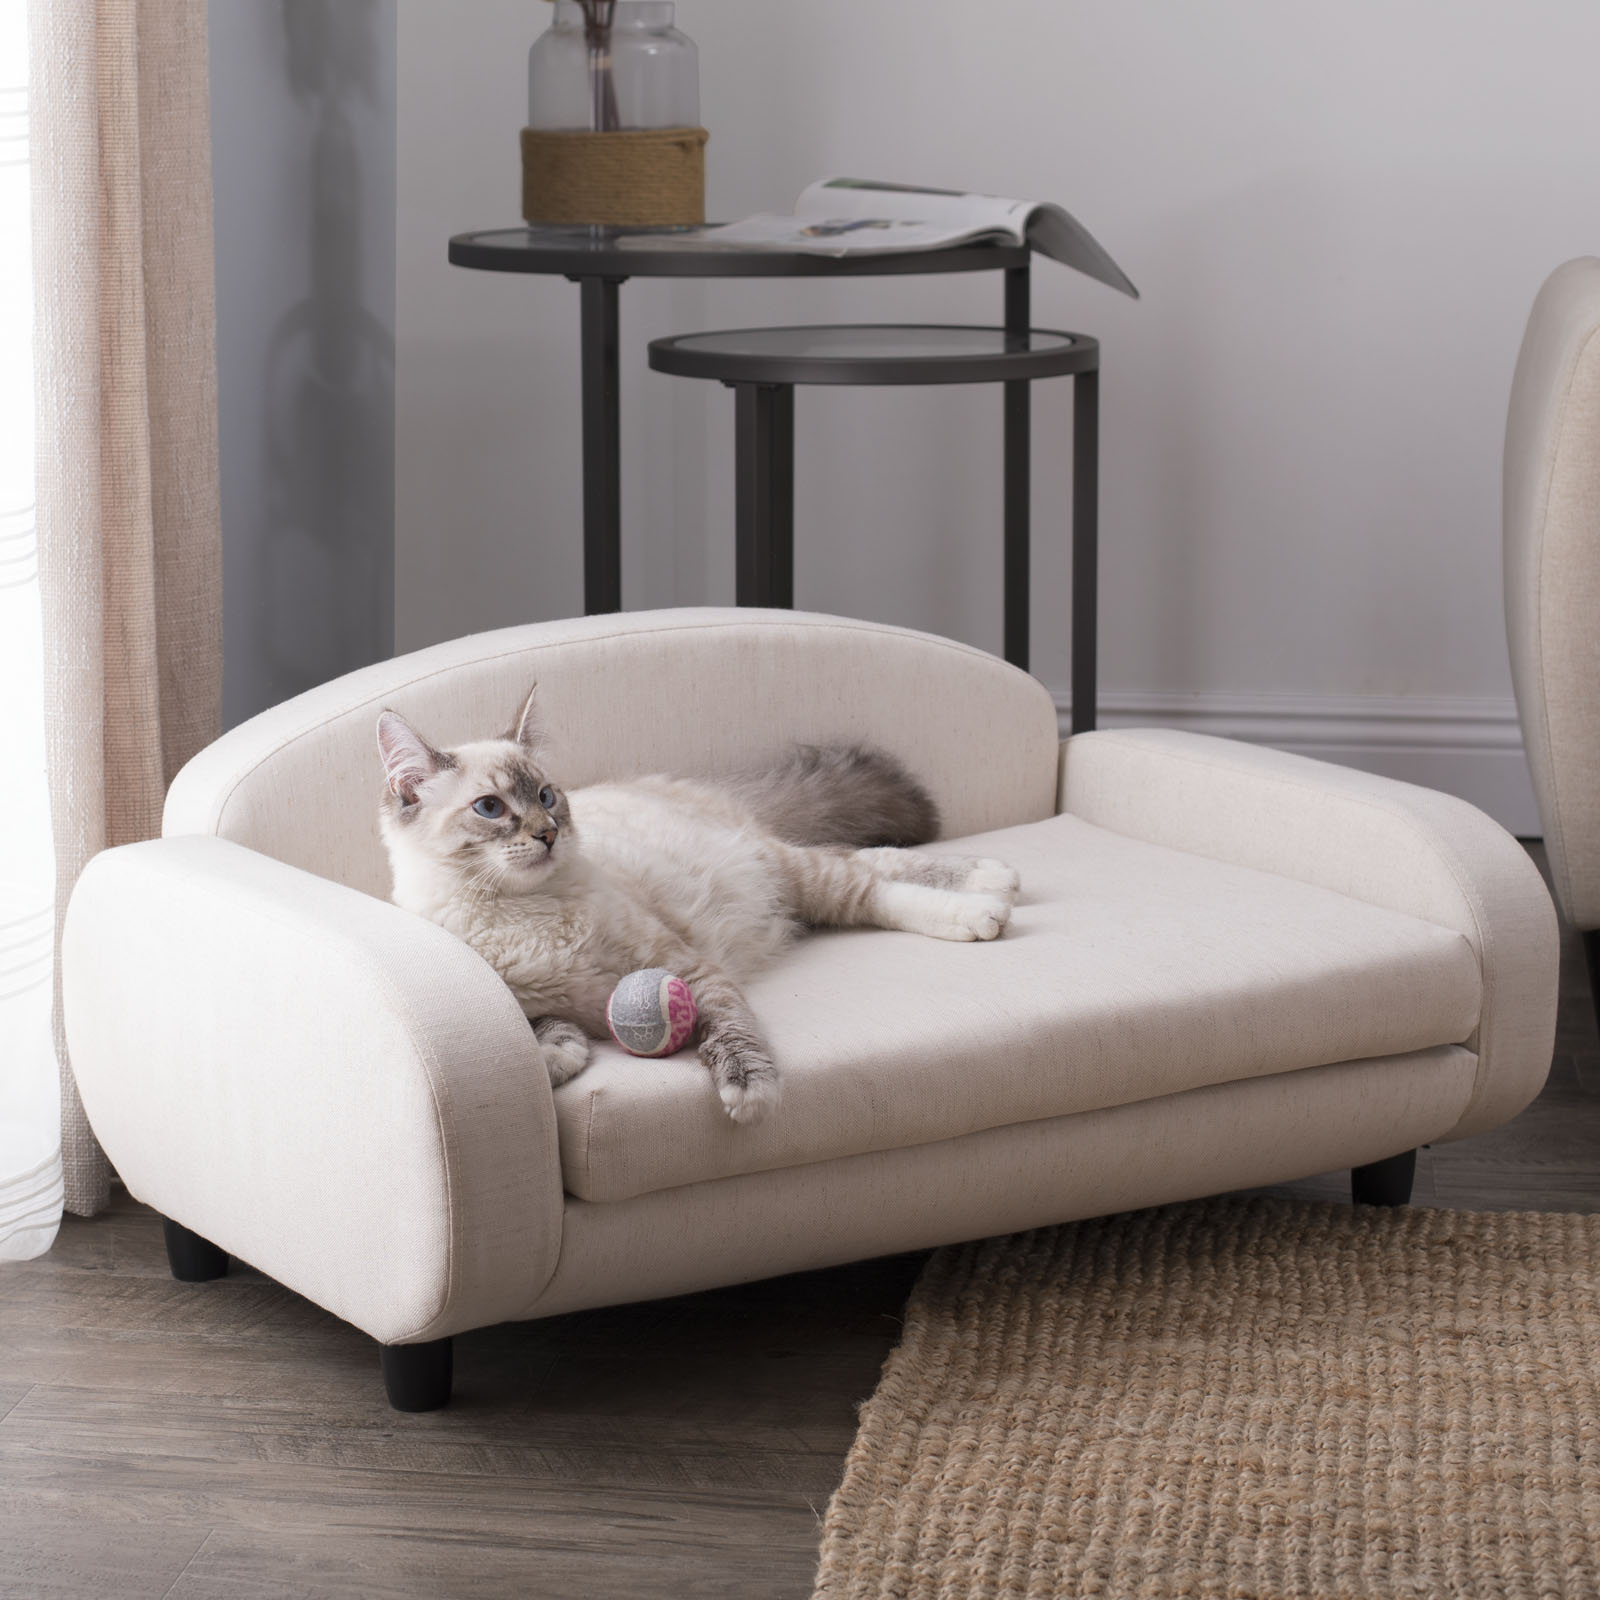 Pet Sofa Bed Pet Sofa Bed For Small Dogs Or Cats In White